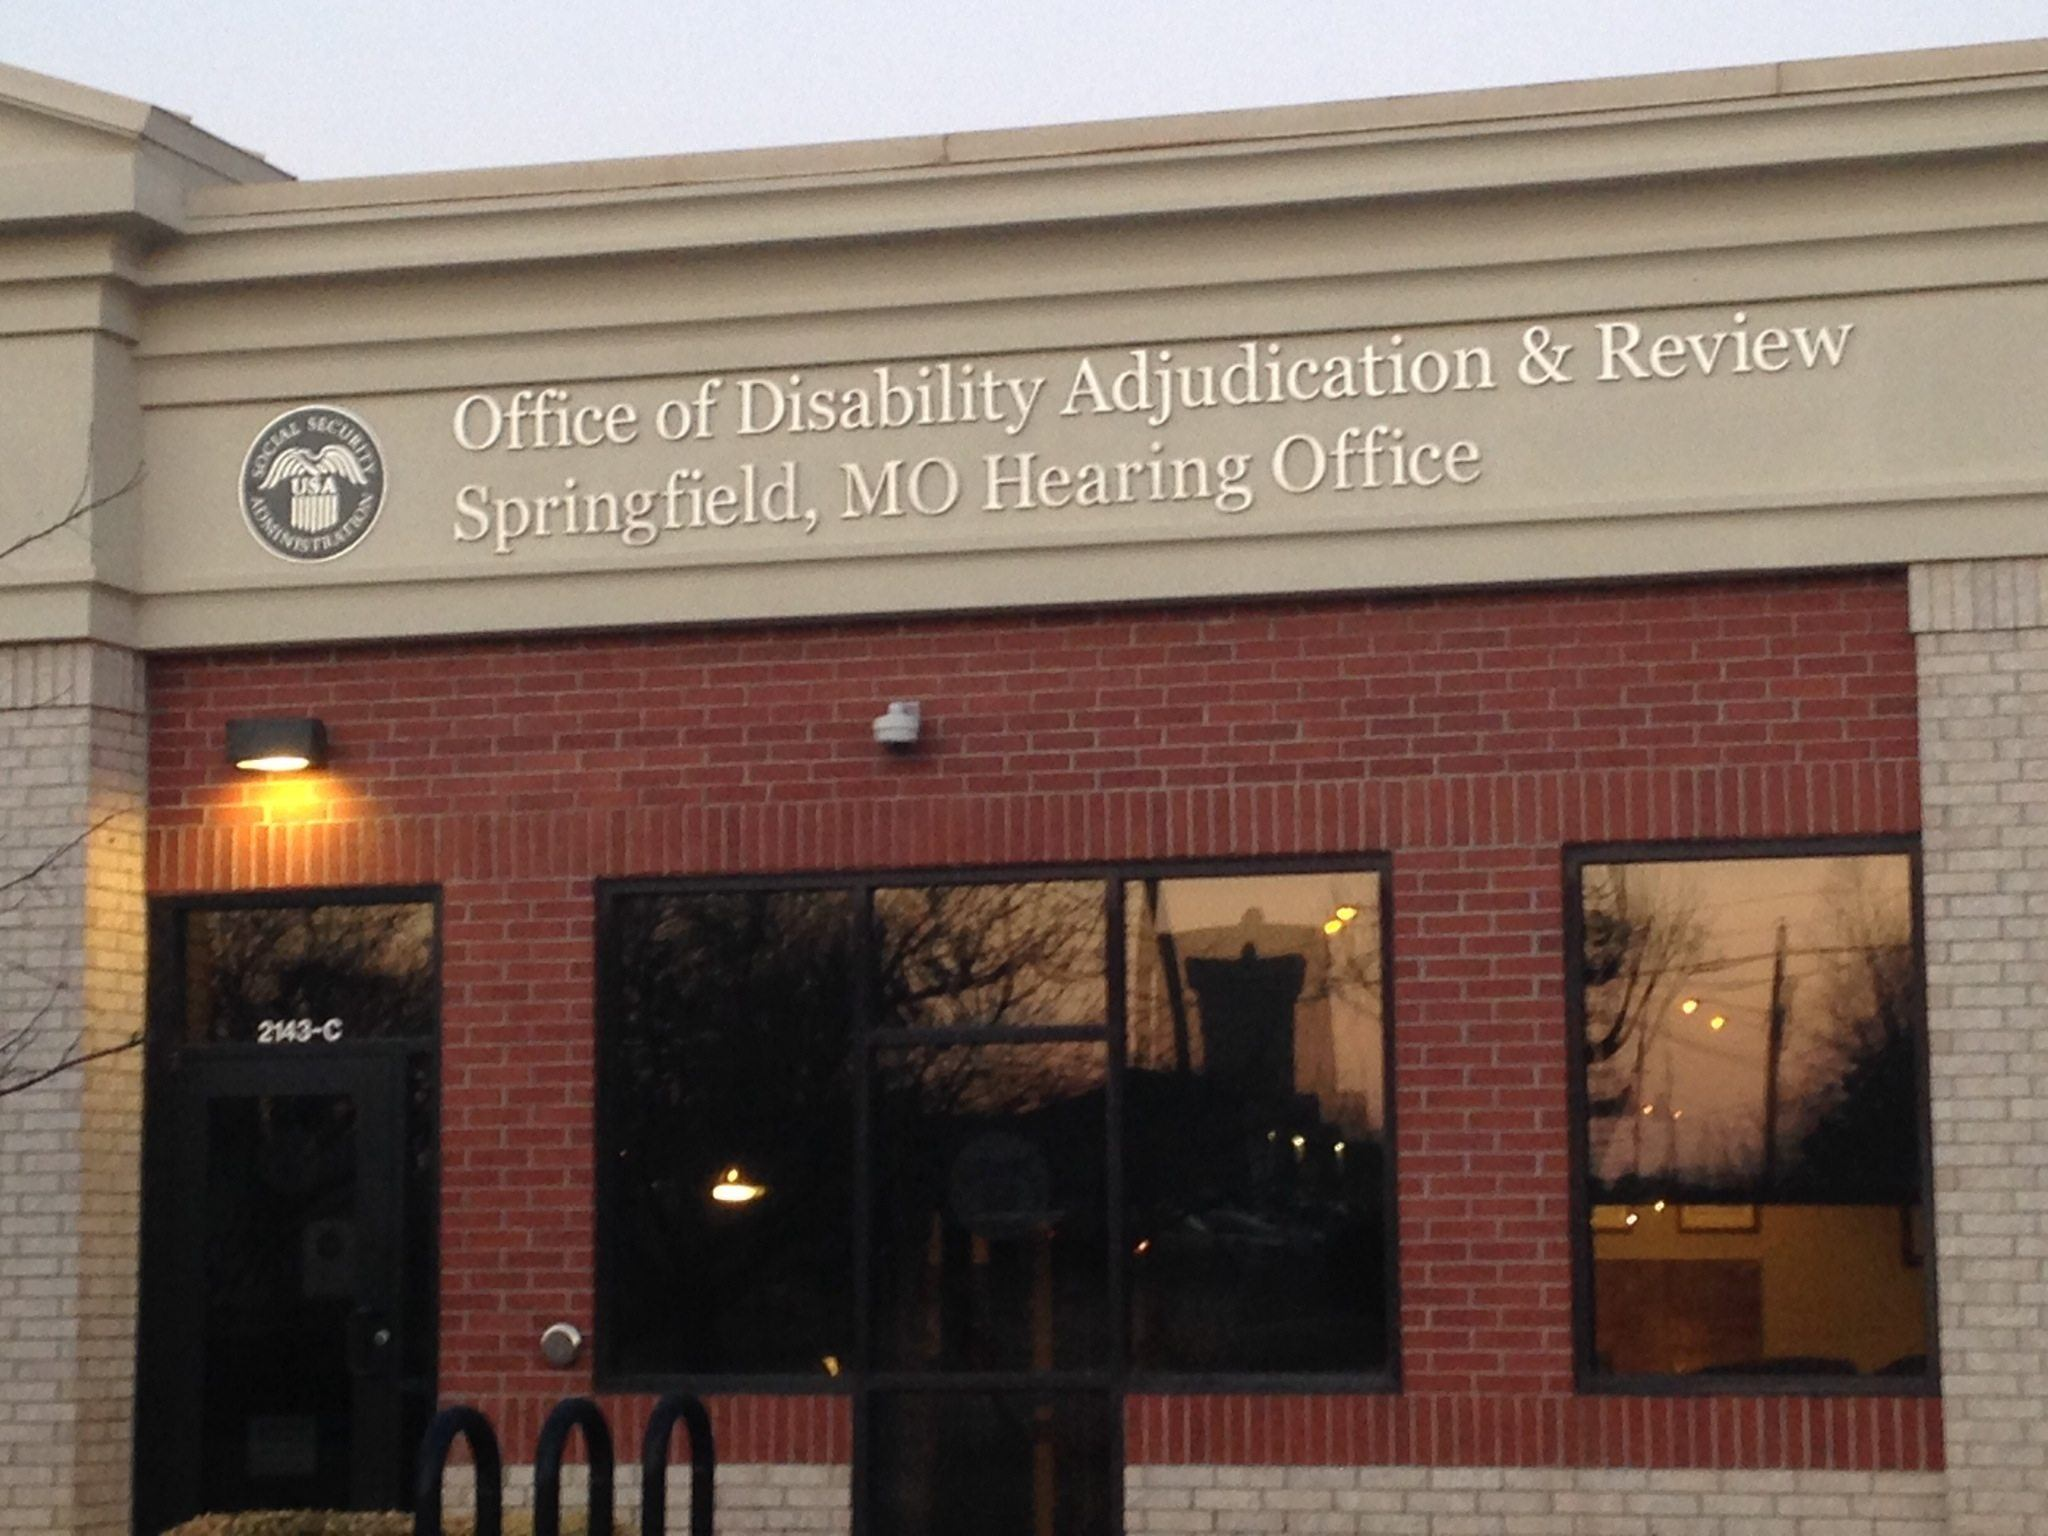 Springfield Missouri Odar For A Social Security Disability